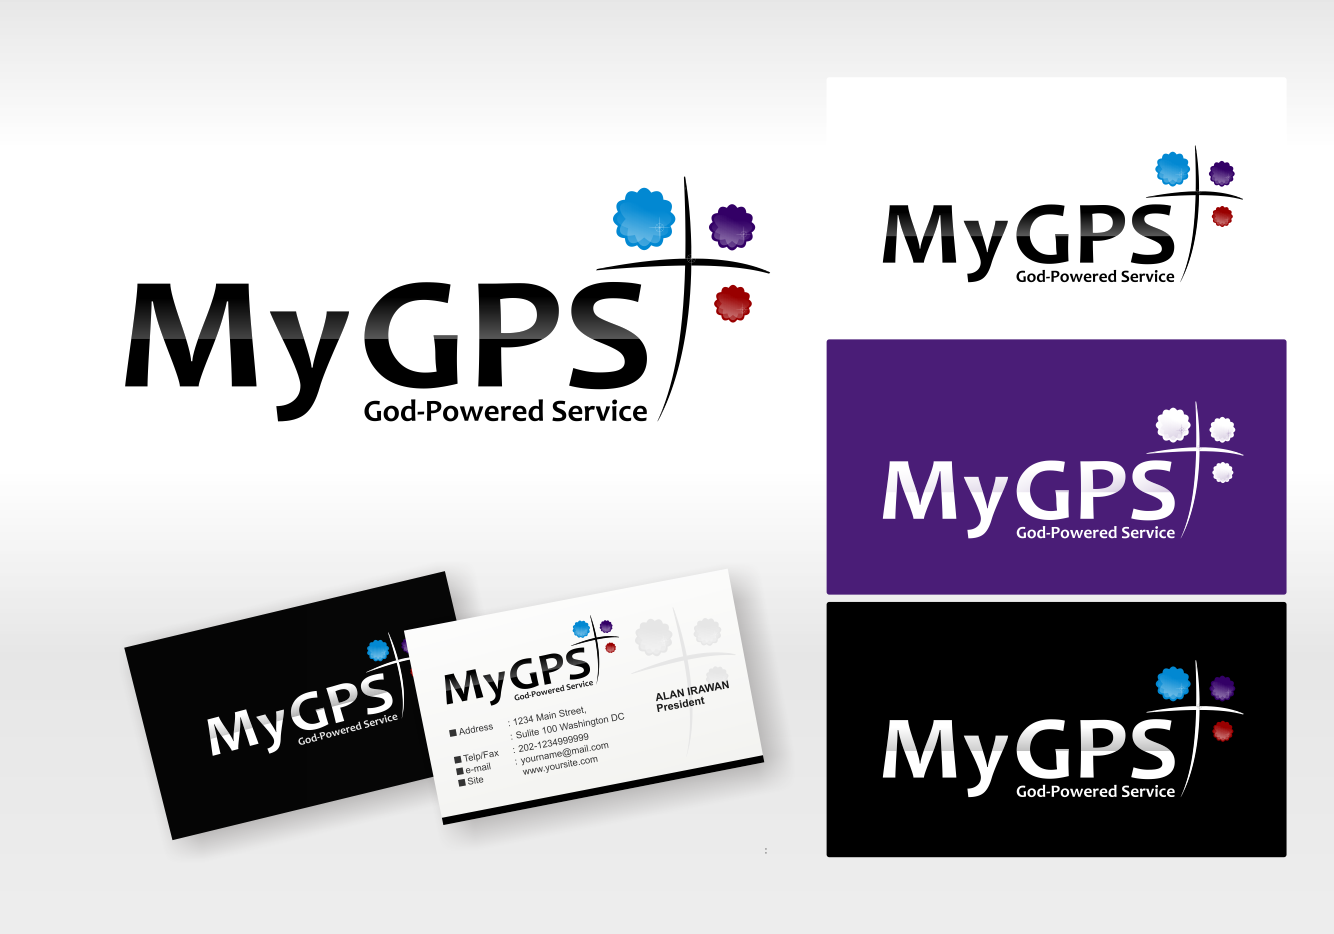 New logo wanted for My GPS (God-Powered Service)